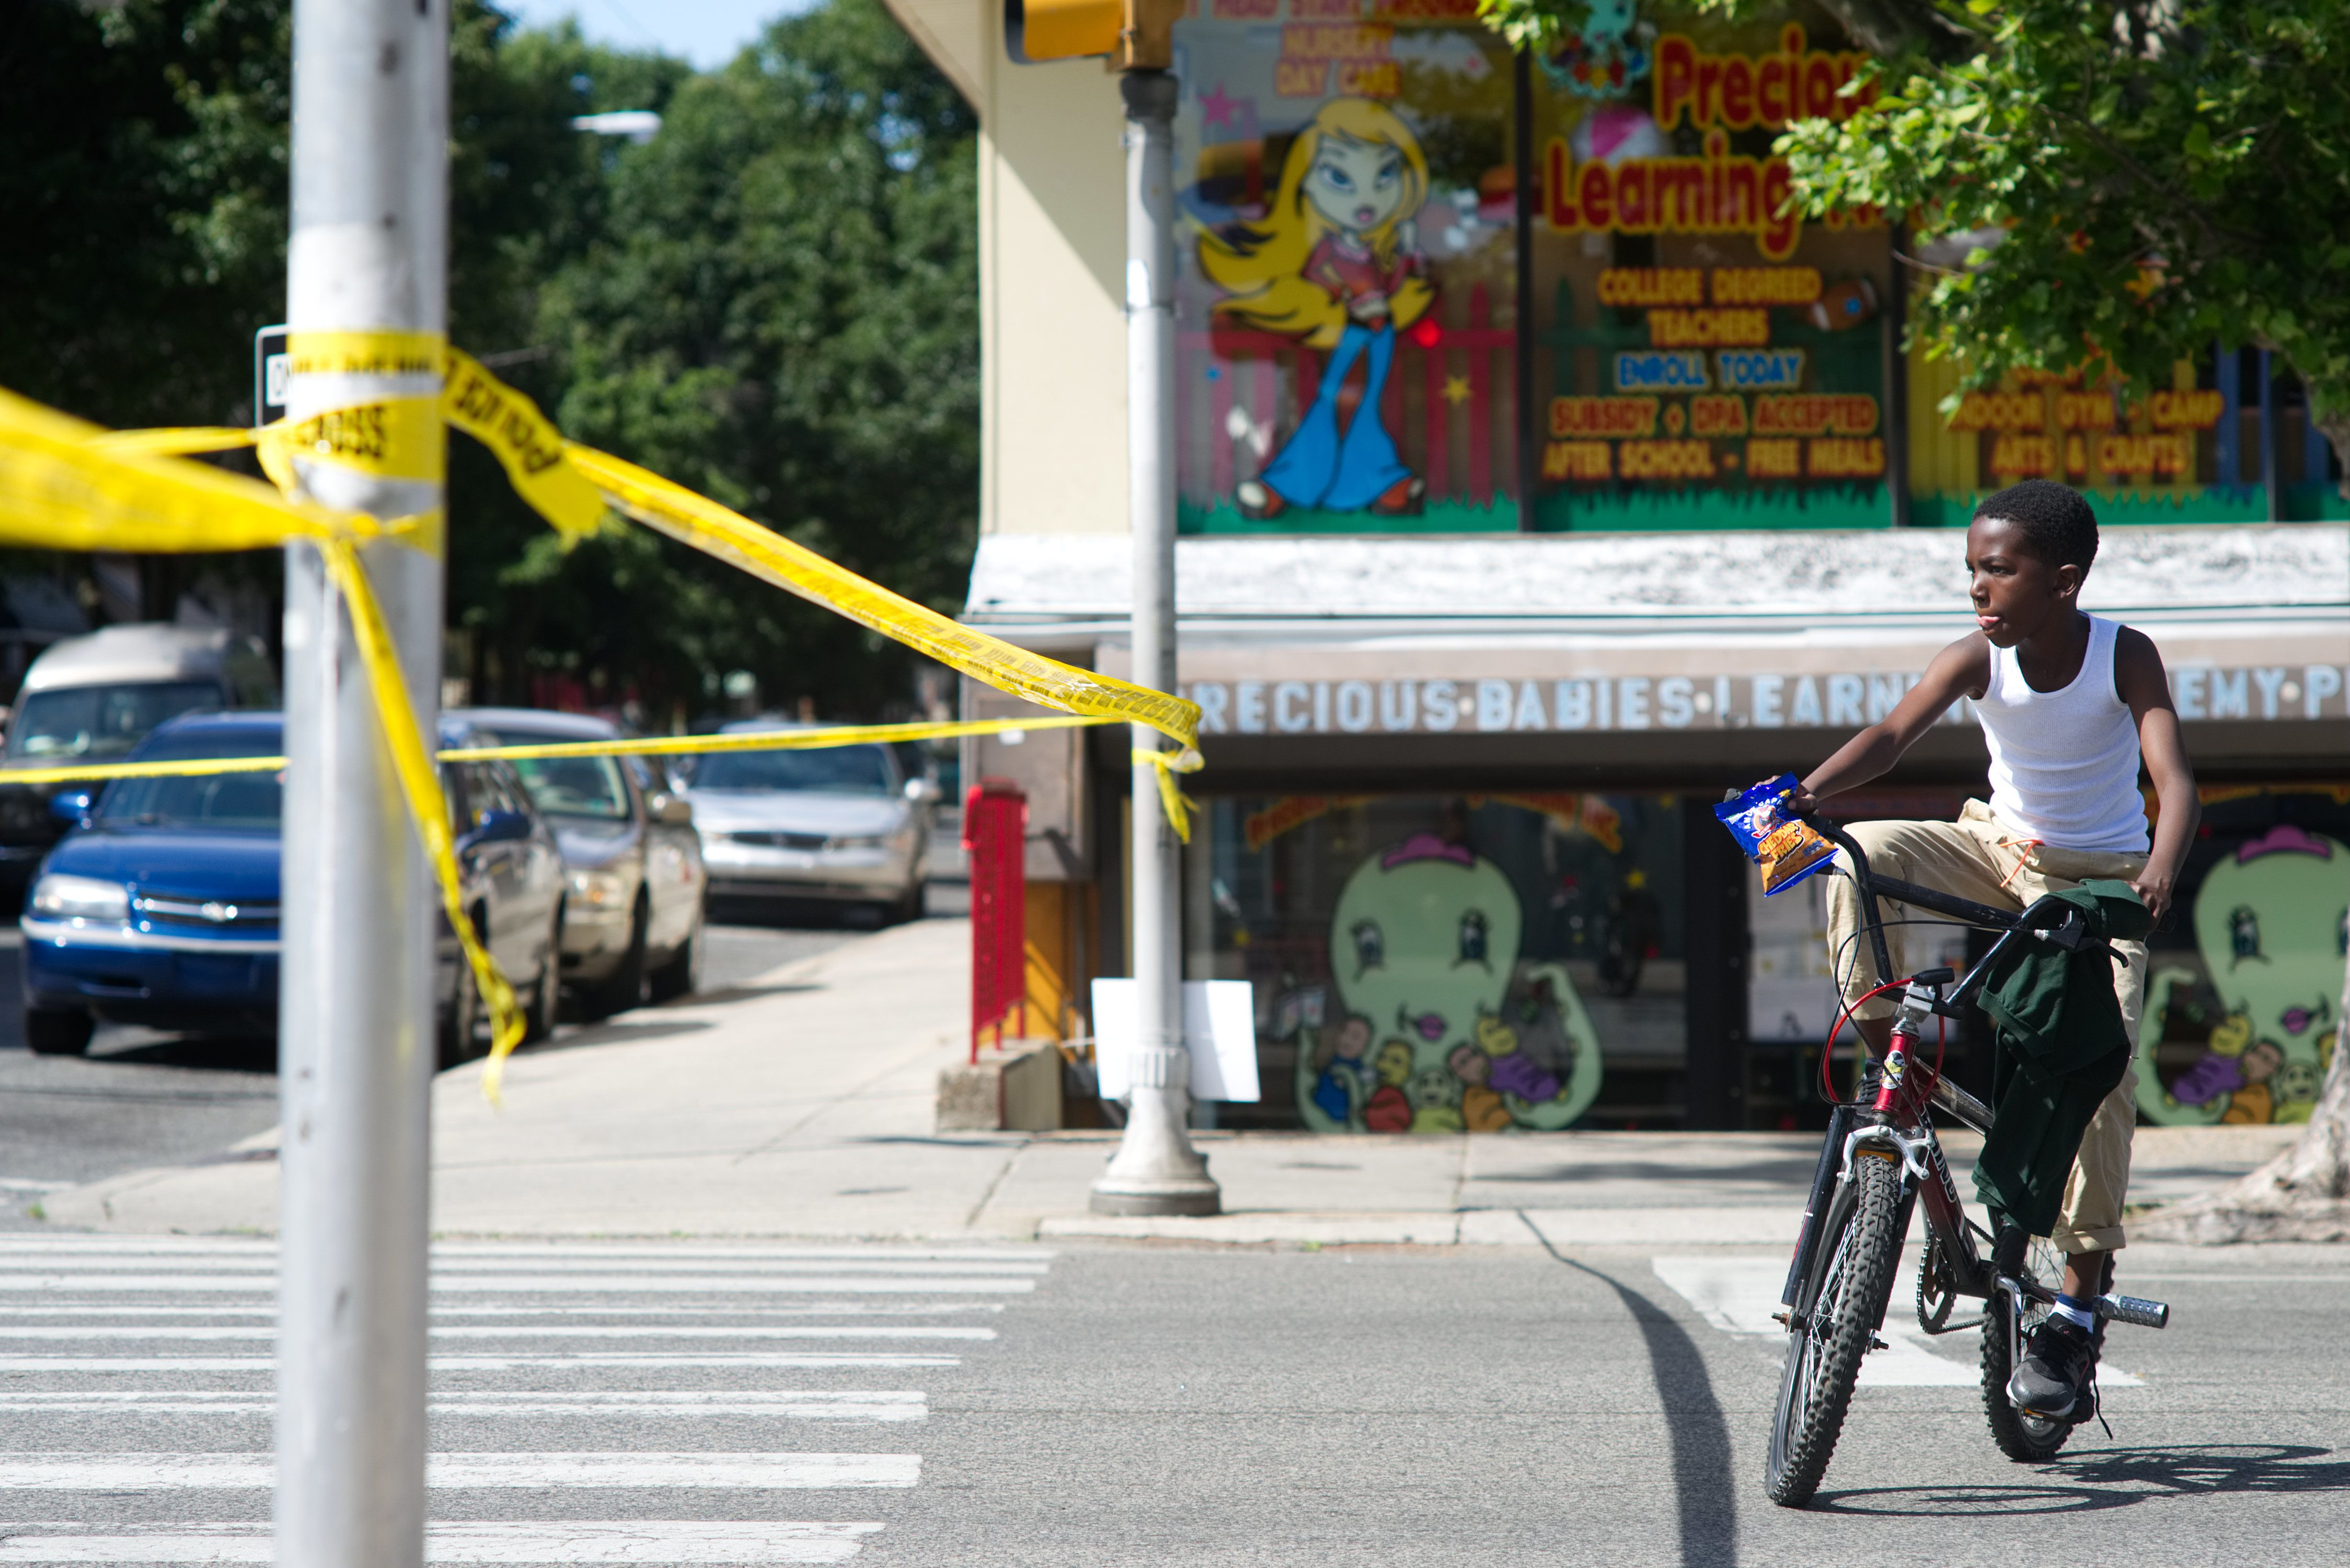 A boy circles on a bike near the site of a crime investigation after a shooting in North Philadelphia. Pennsylvania Gov. Tom